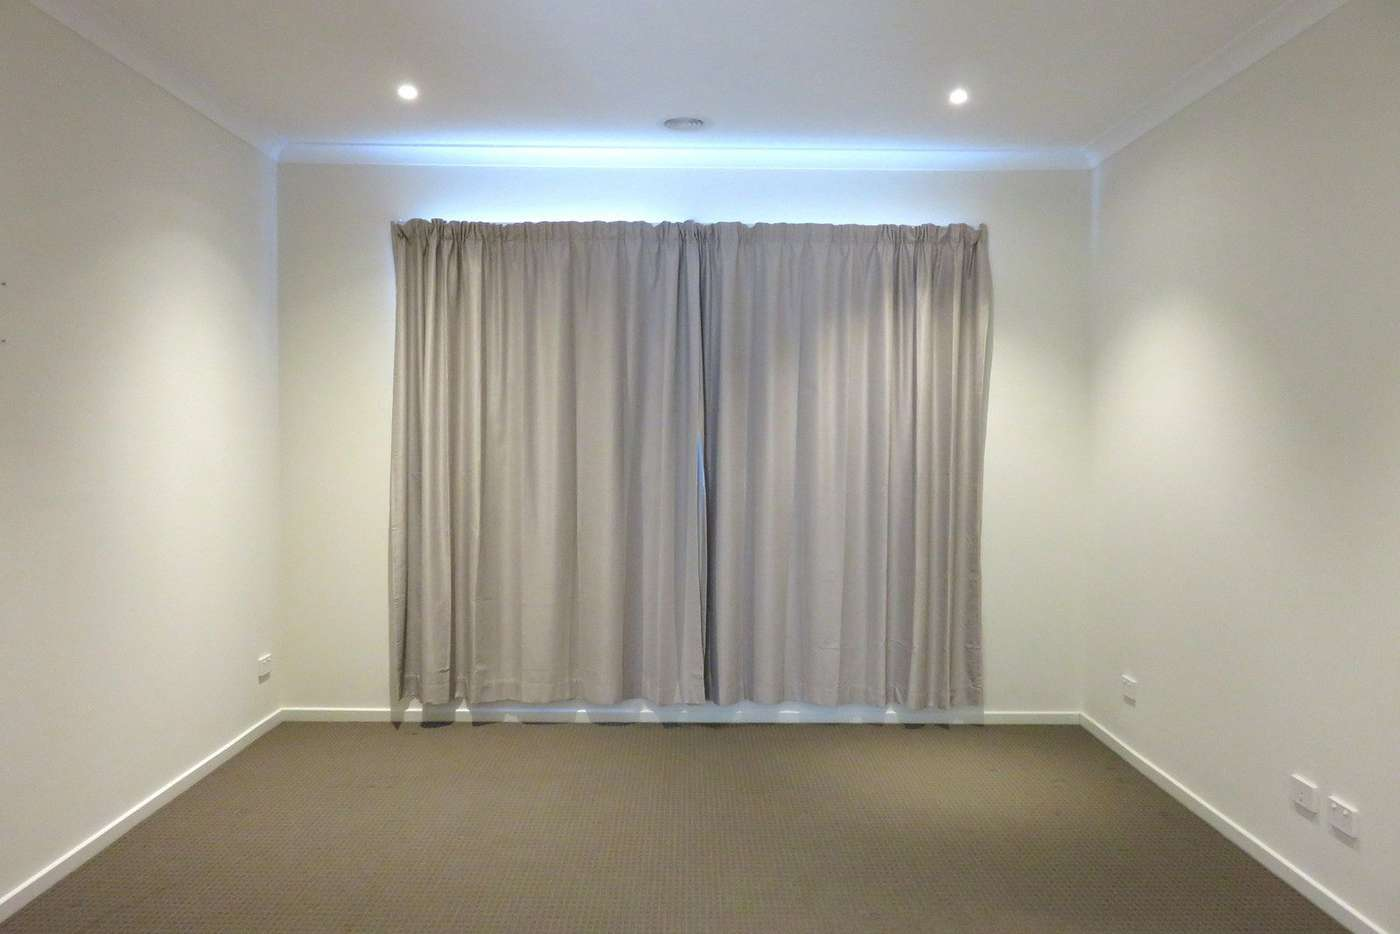 Seventh view of Homely house listing, 30 Gallivant Drive, Doreen VIC 3754